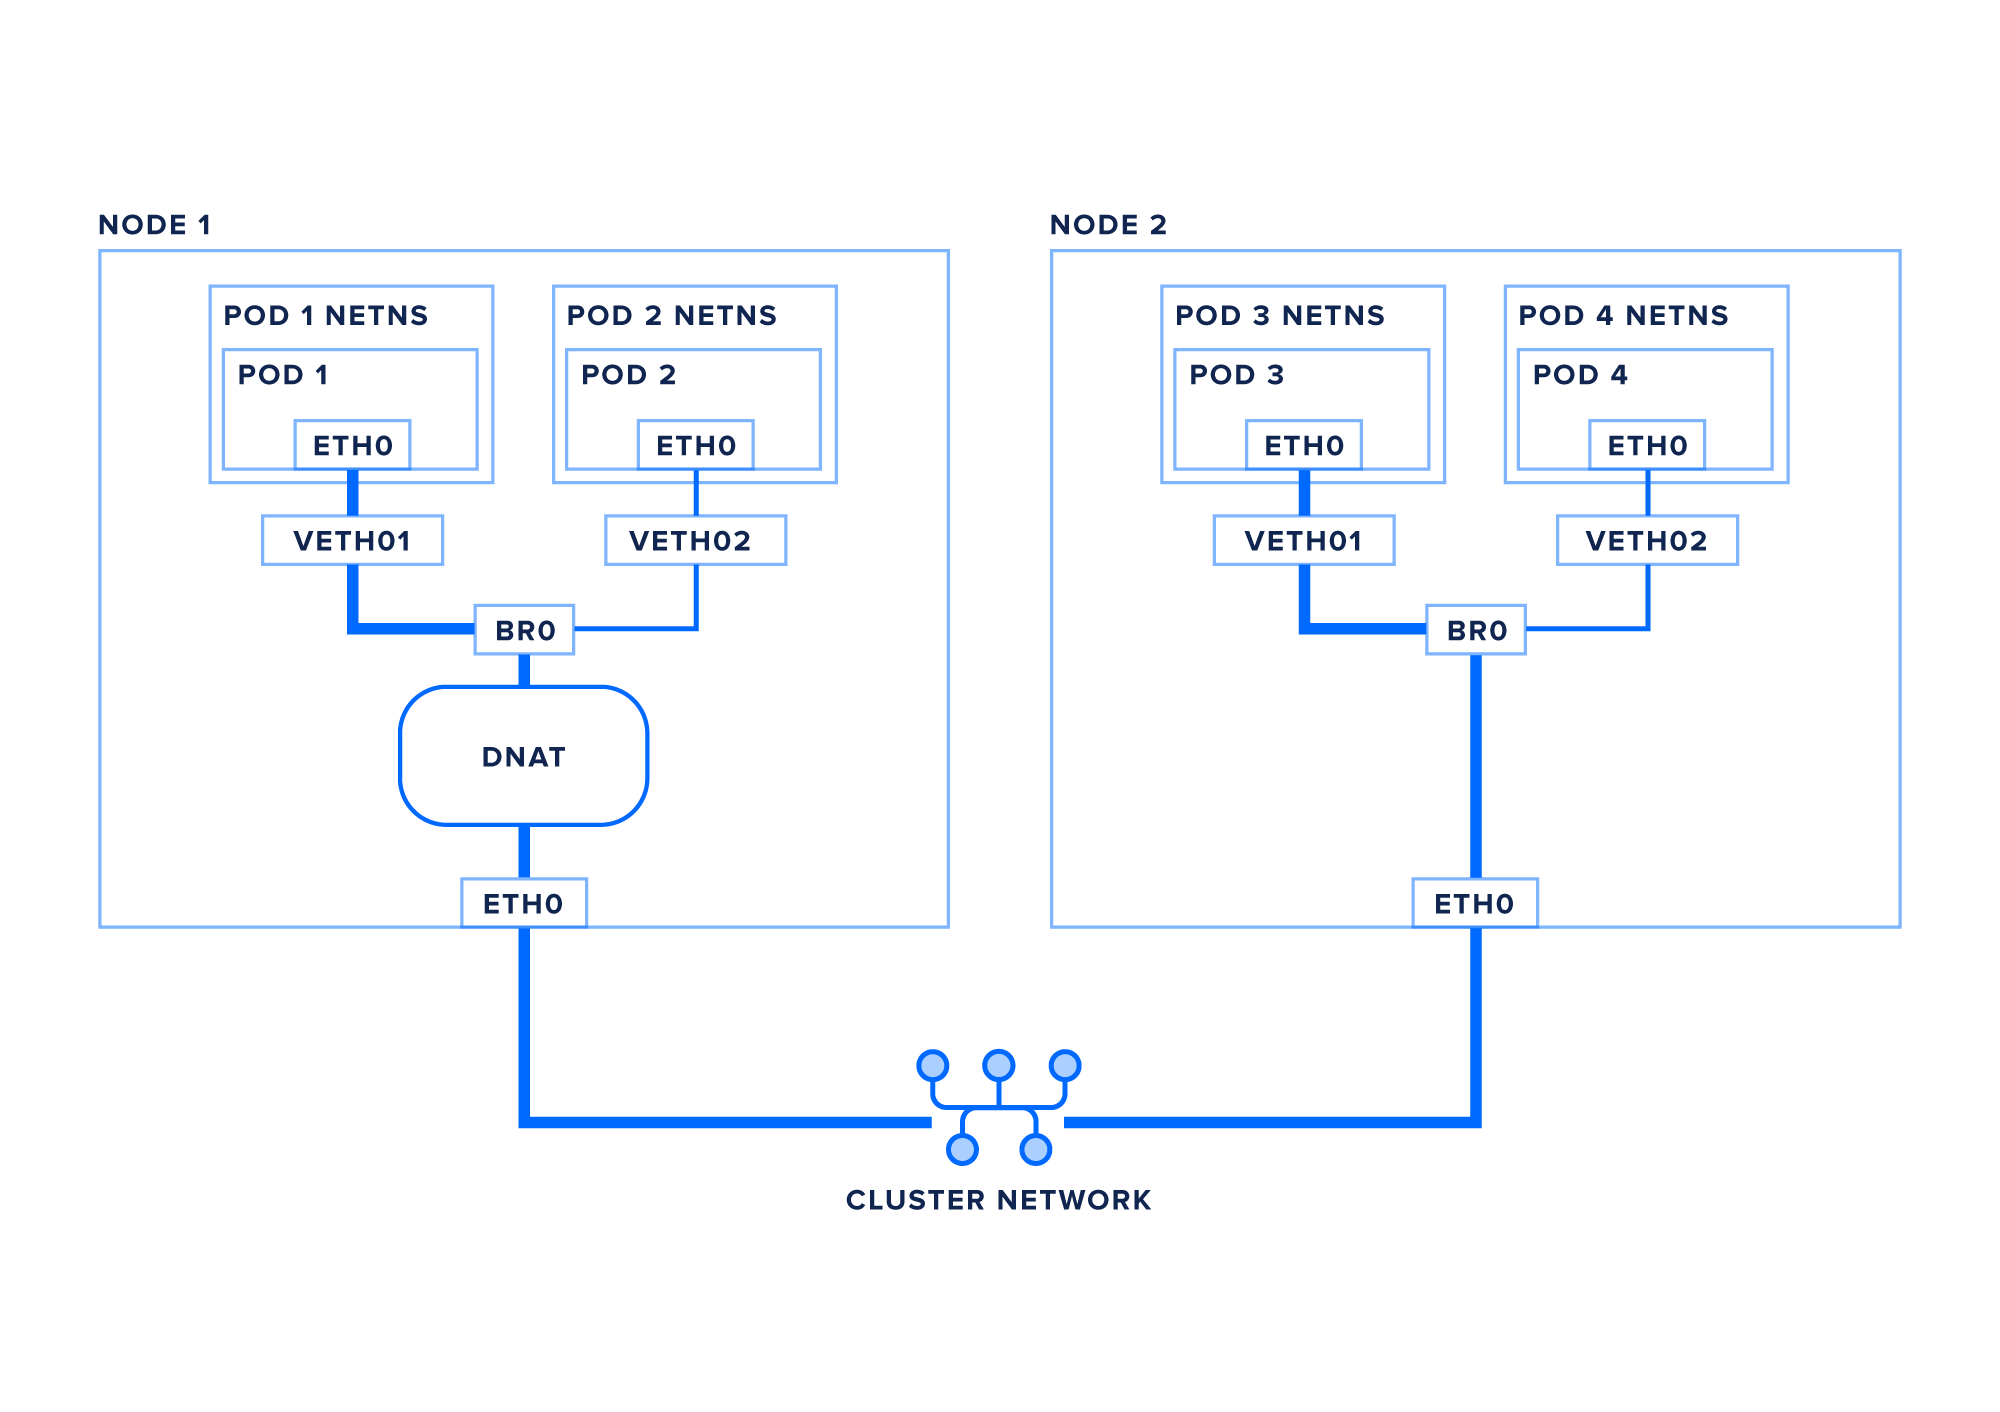 Networking diagram between two Kubernetes nodes, showing DNAT translation of virtual IPs